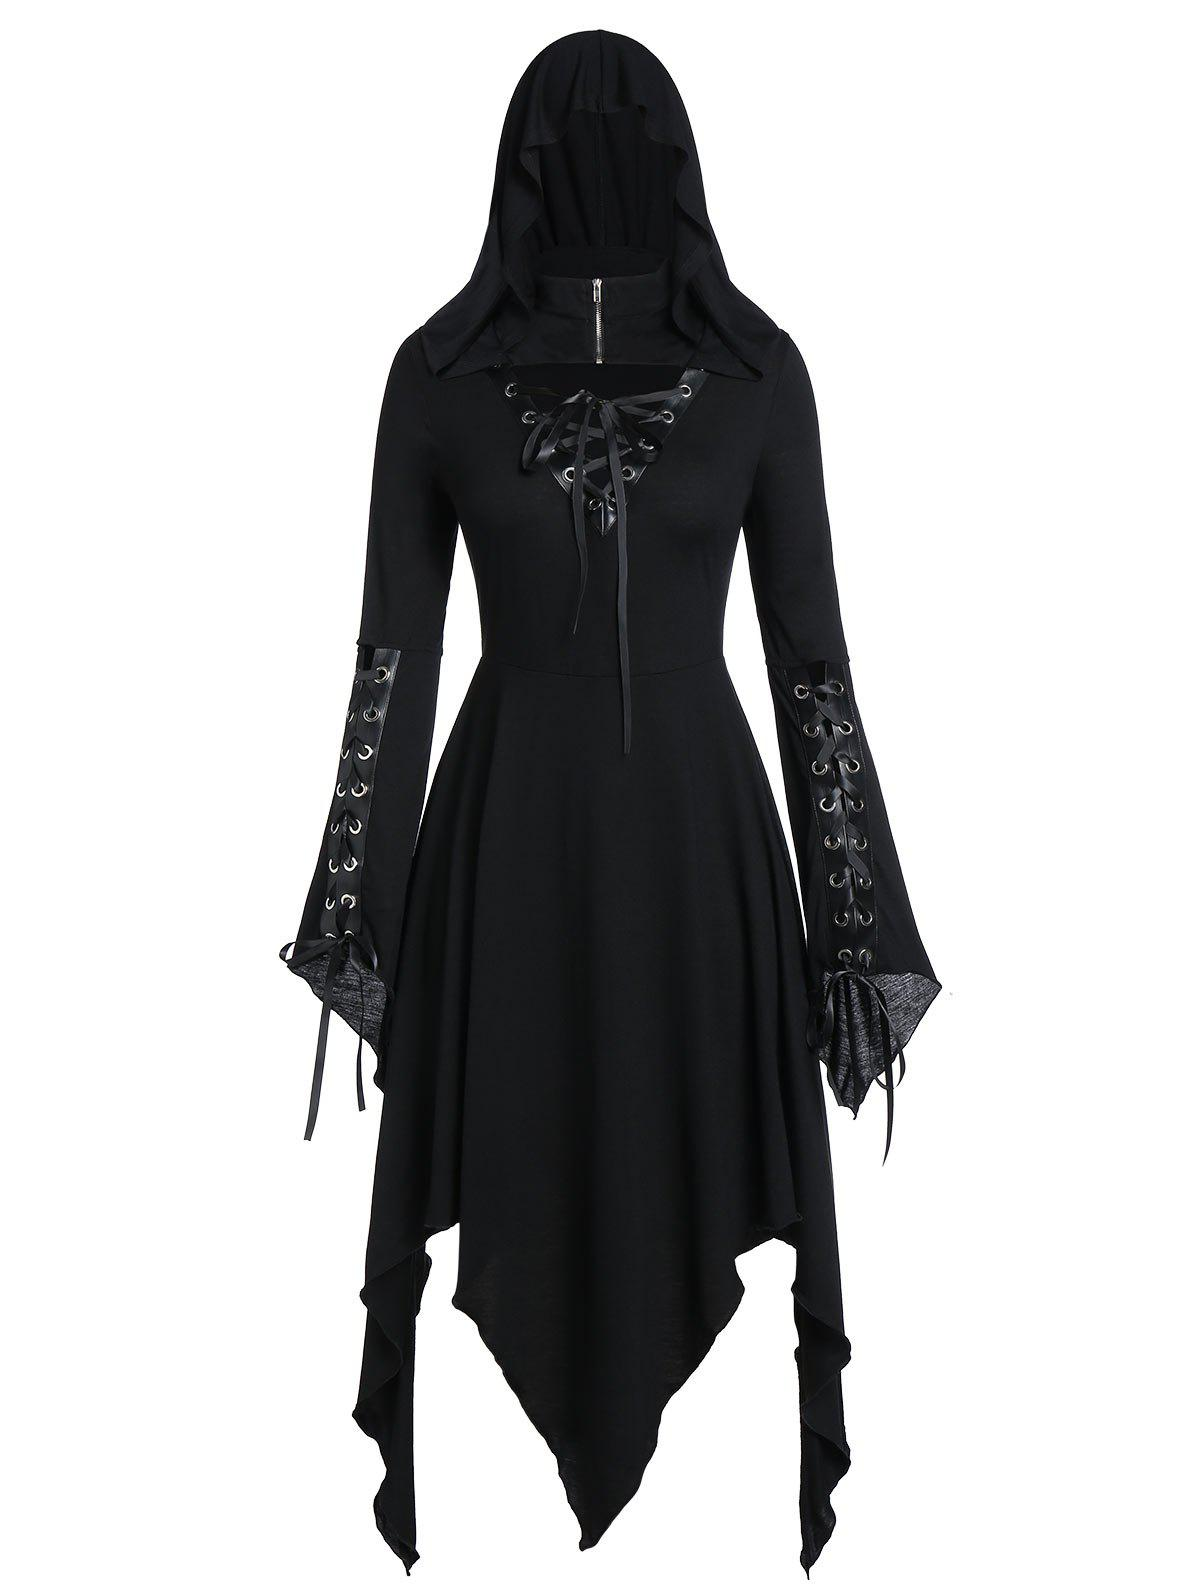 Plus Size Halloween Lace Up Gothic Hanky Hem Dress - BLACK 5X